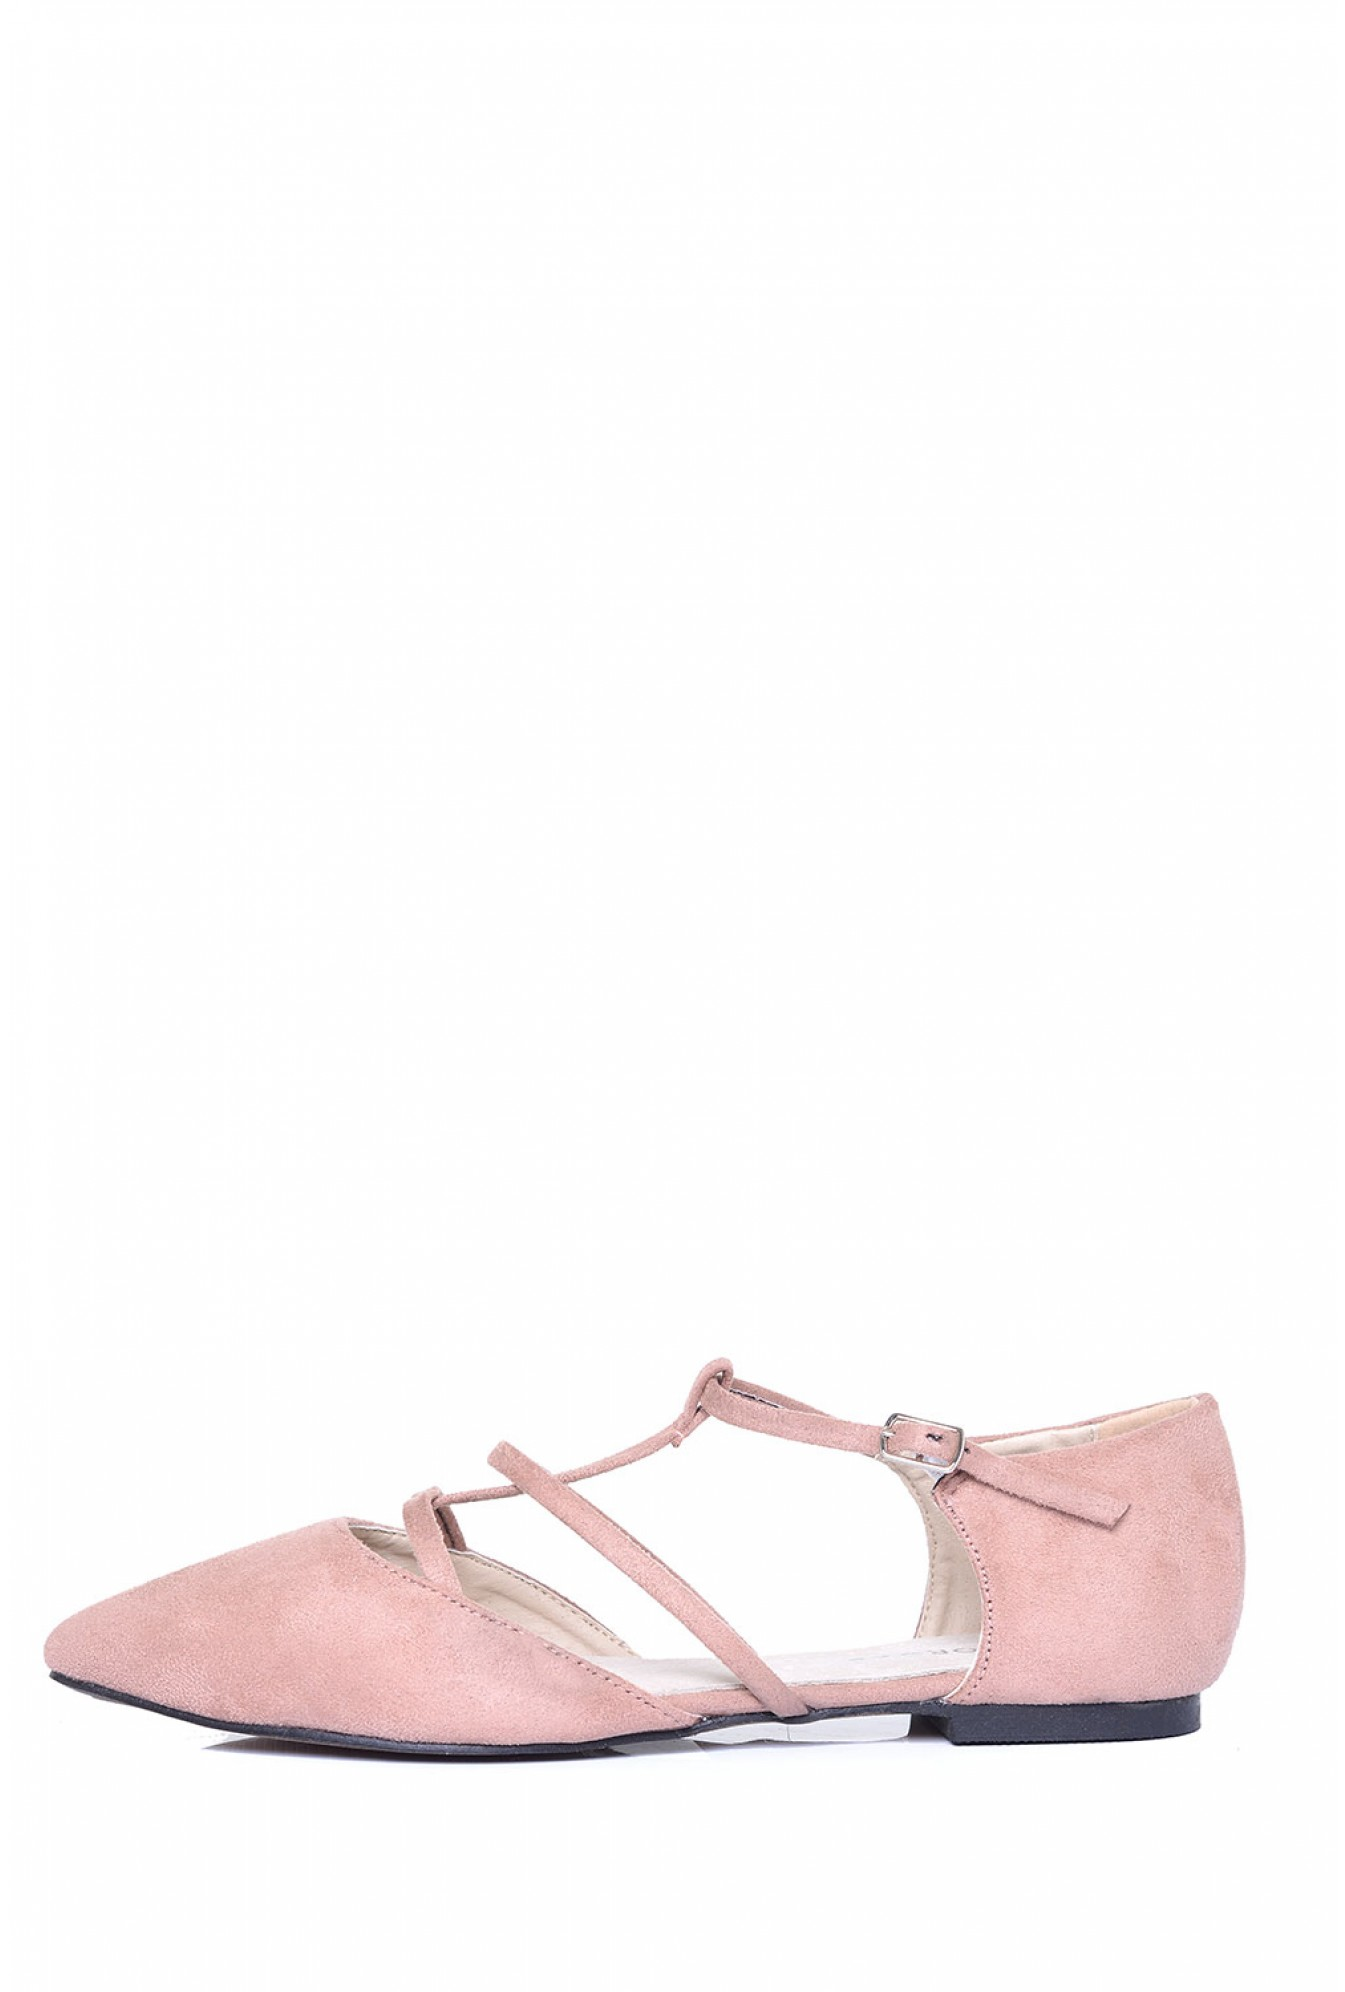 4b840bba96e7 More Views. Bobbi Pointed Lace Up Flats in Pink Suede. Glamorous